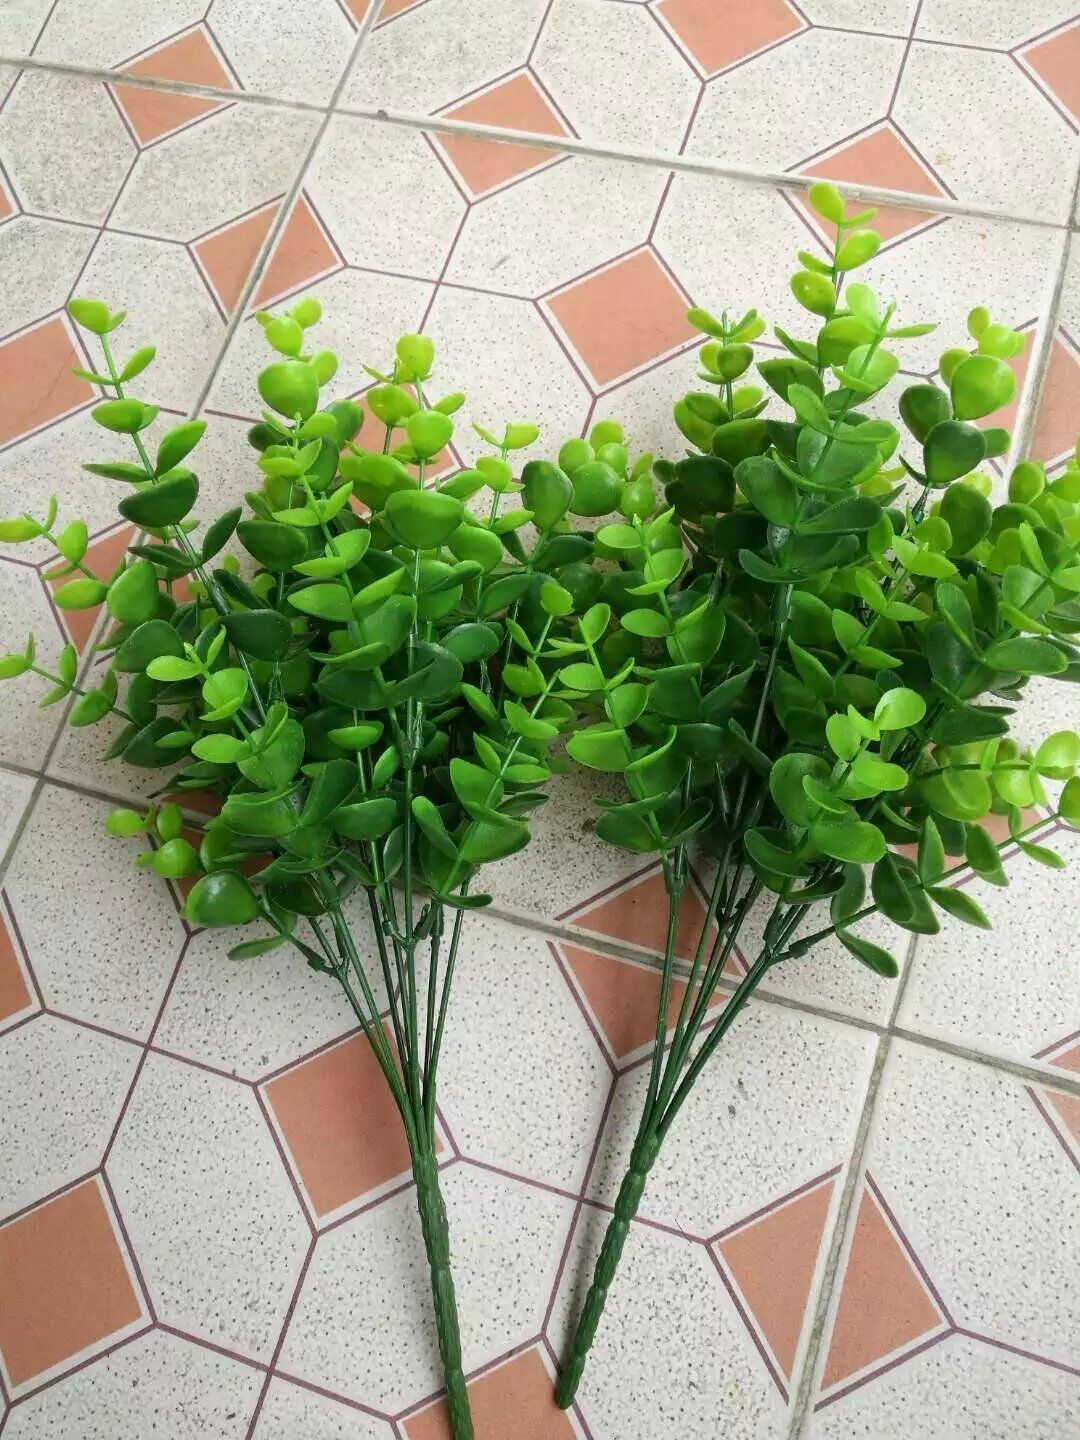 China High Quality Artificial Plants And Flowers Of Grass Bushes